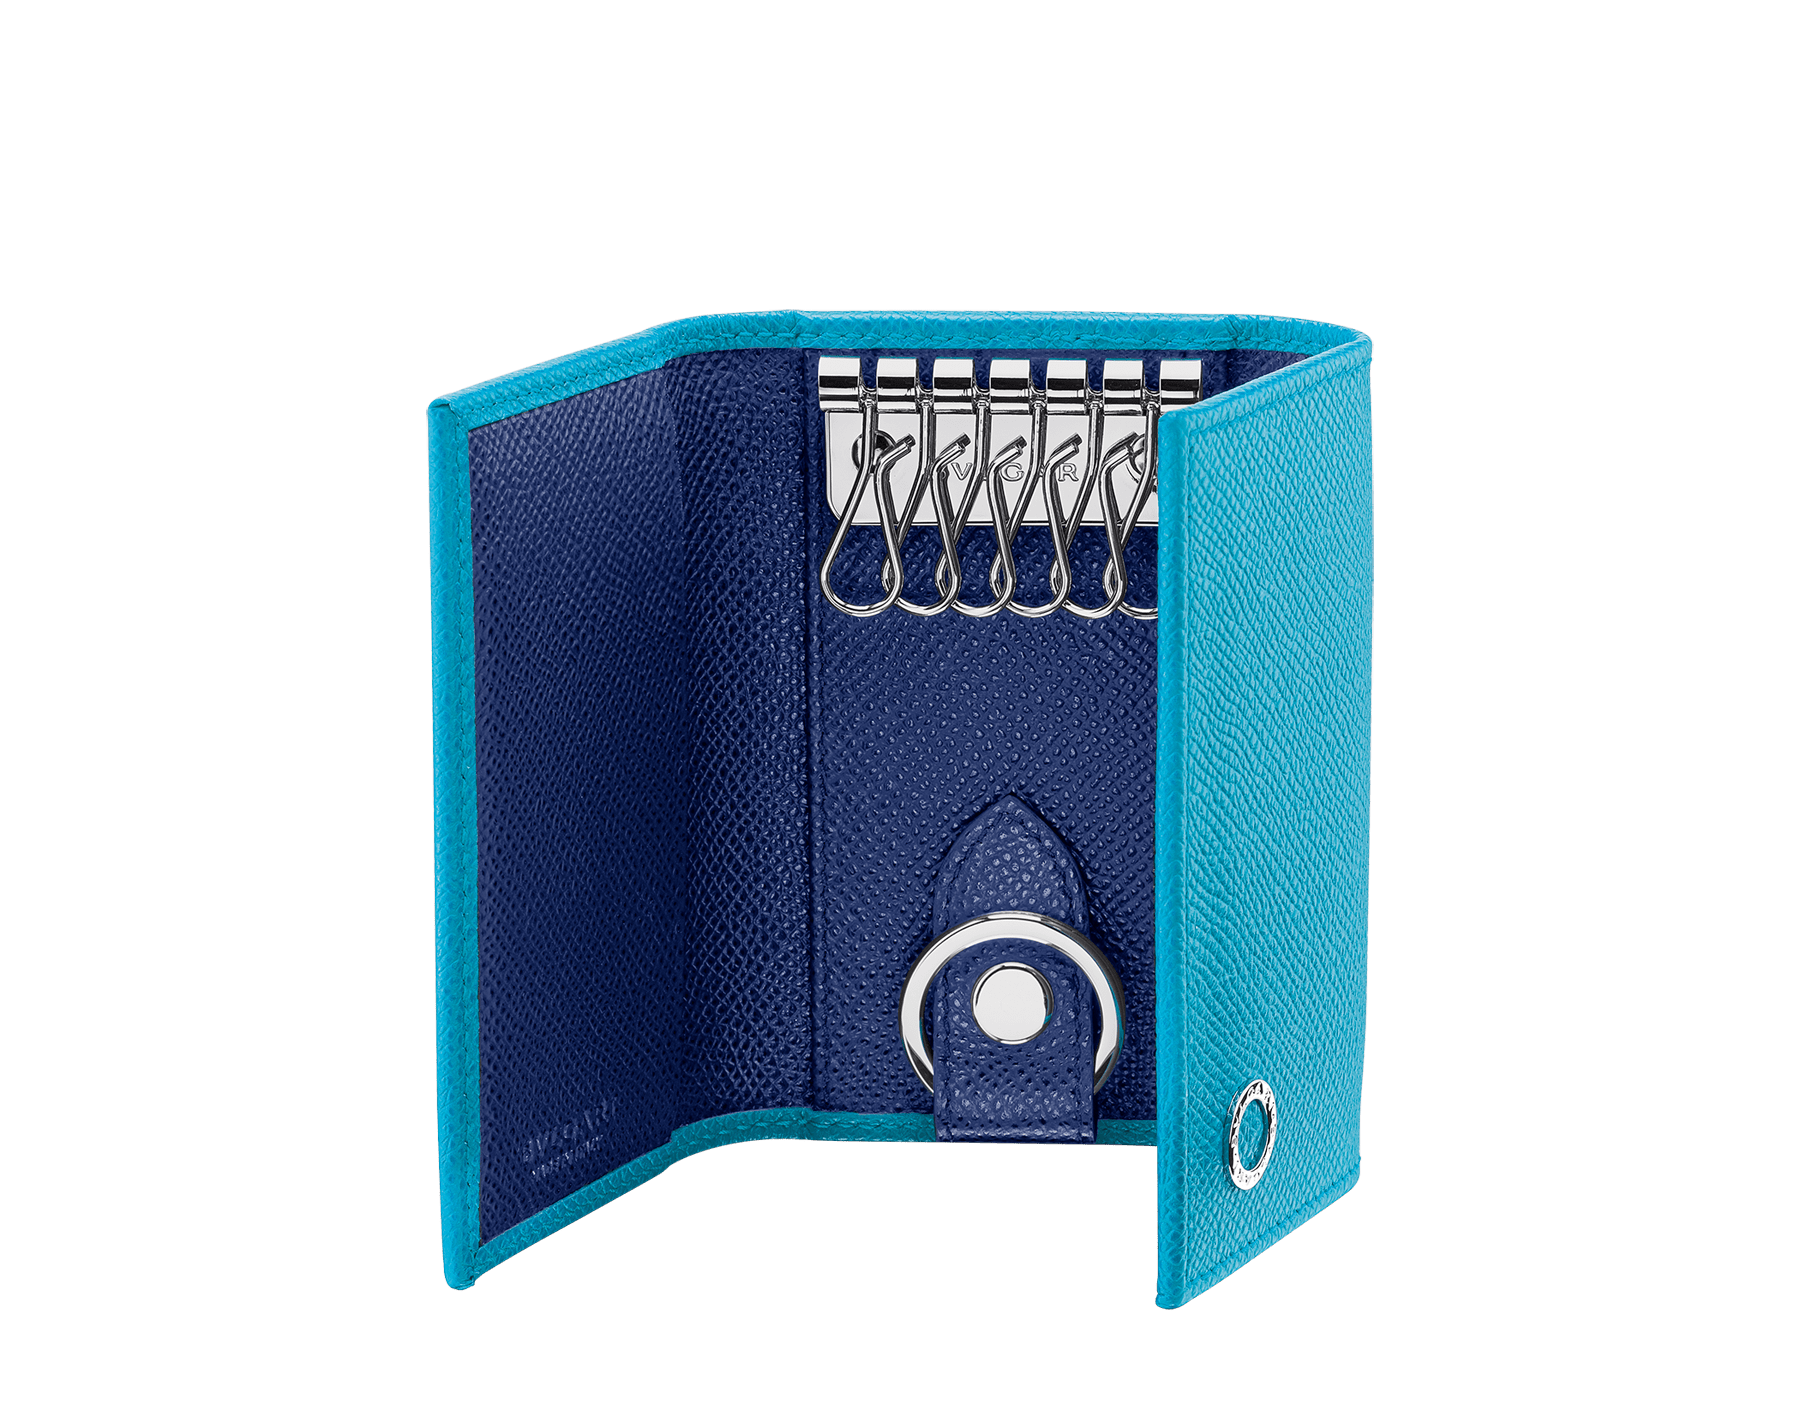 """BVLGARI BVLGARI"" double key holder in capri turquoise and royal sapphire grain calf leather. Detachable car key holder in palladium plated brass. BBM-DOUBLE-KEYHOLDb image 2"